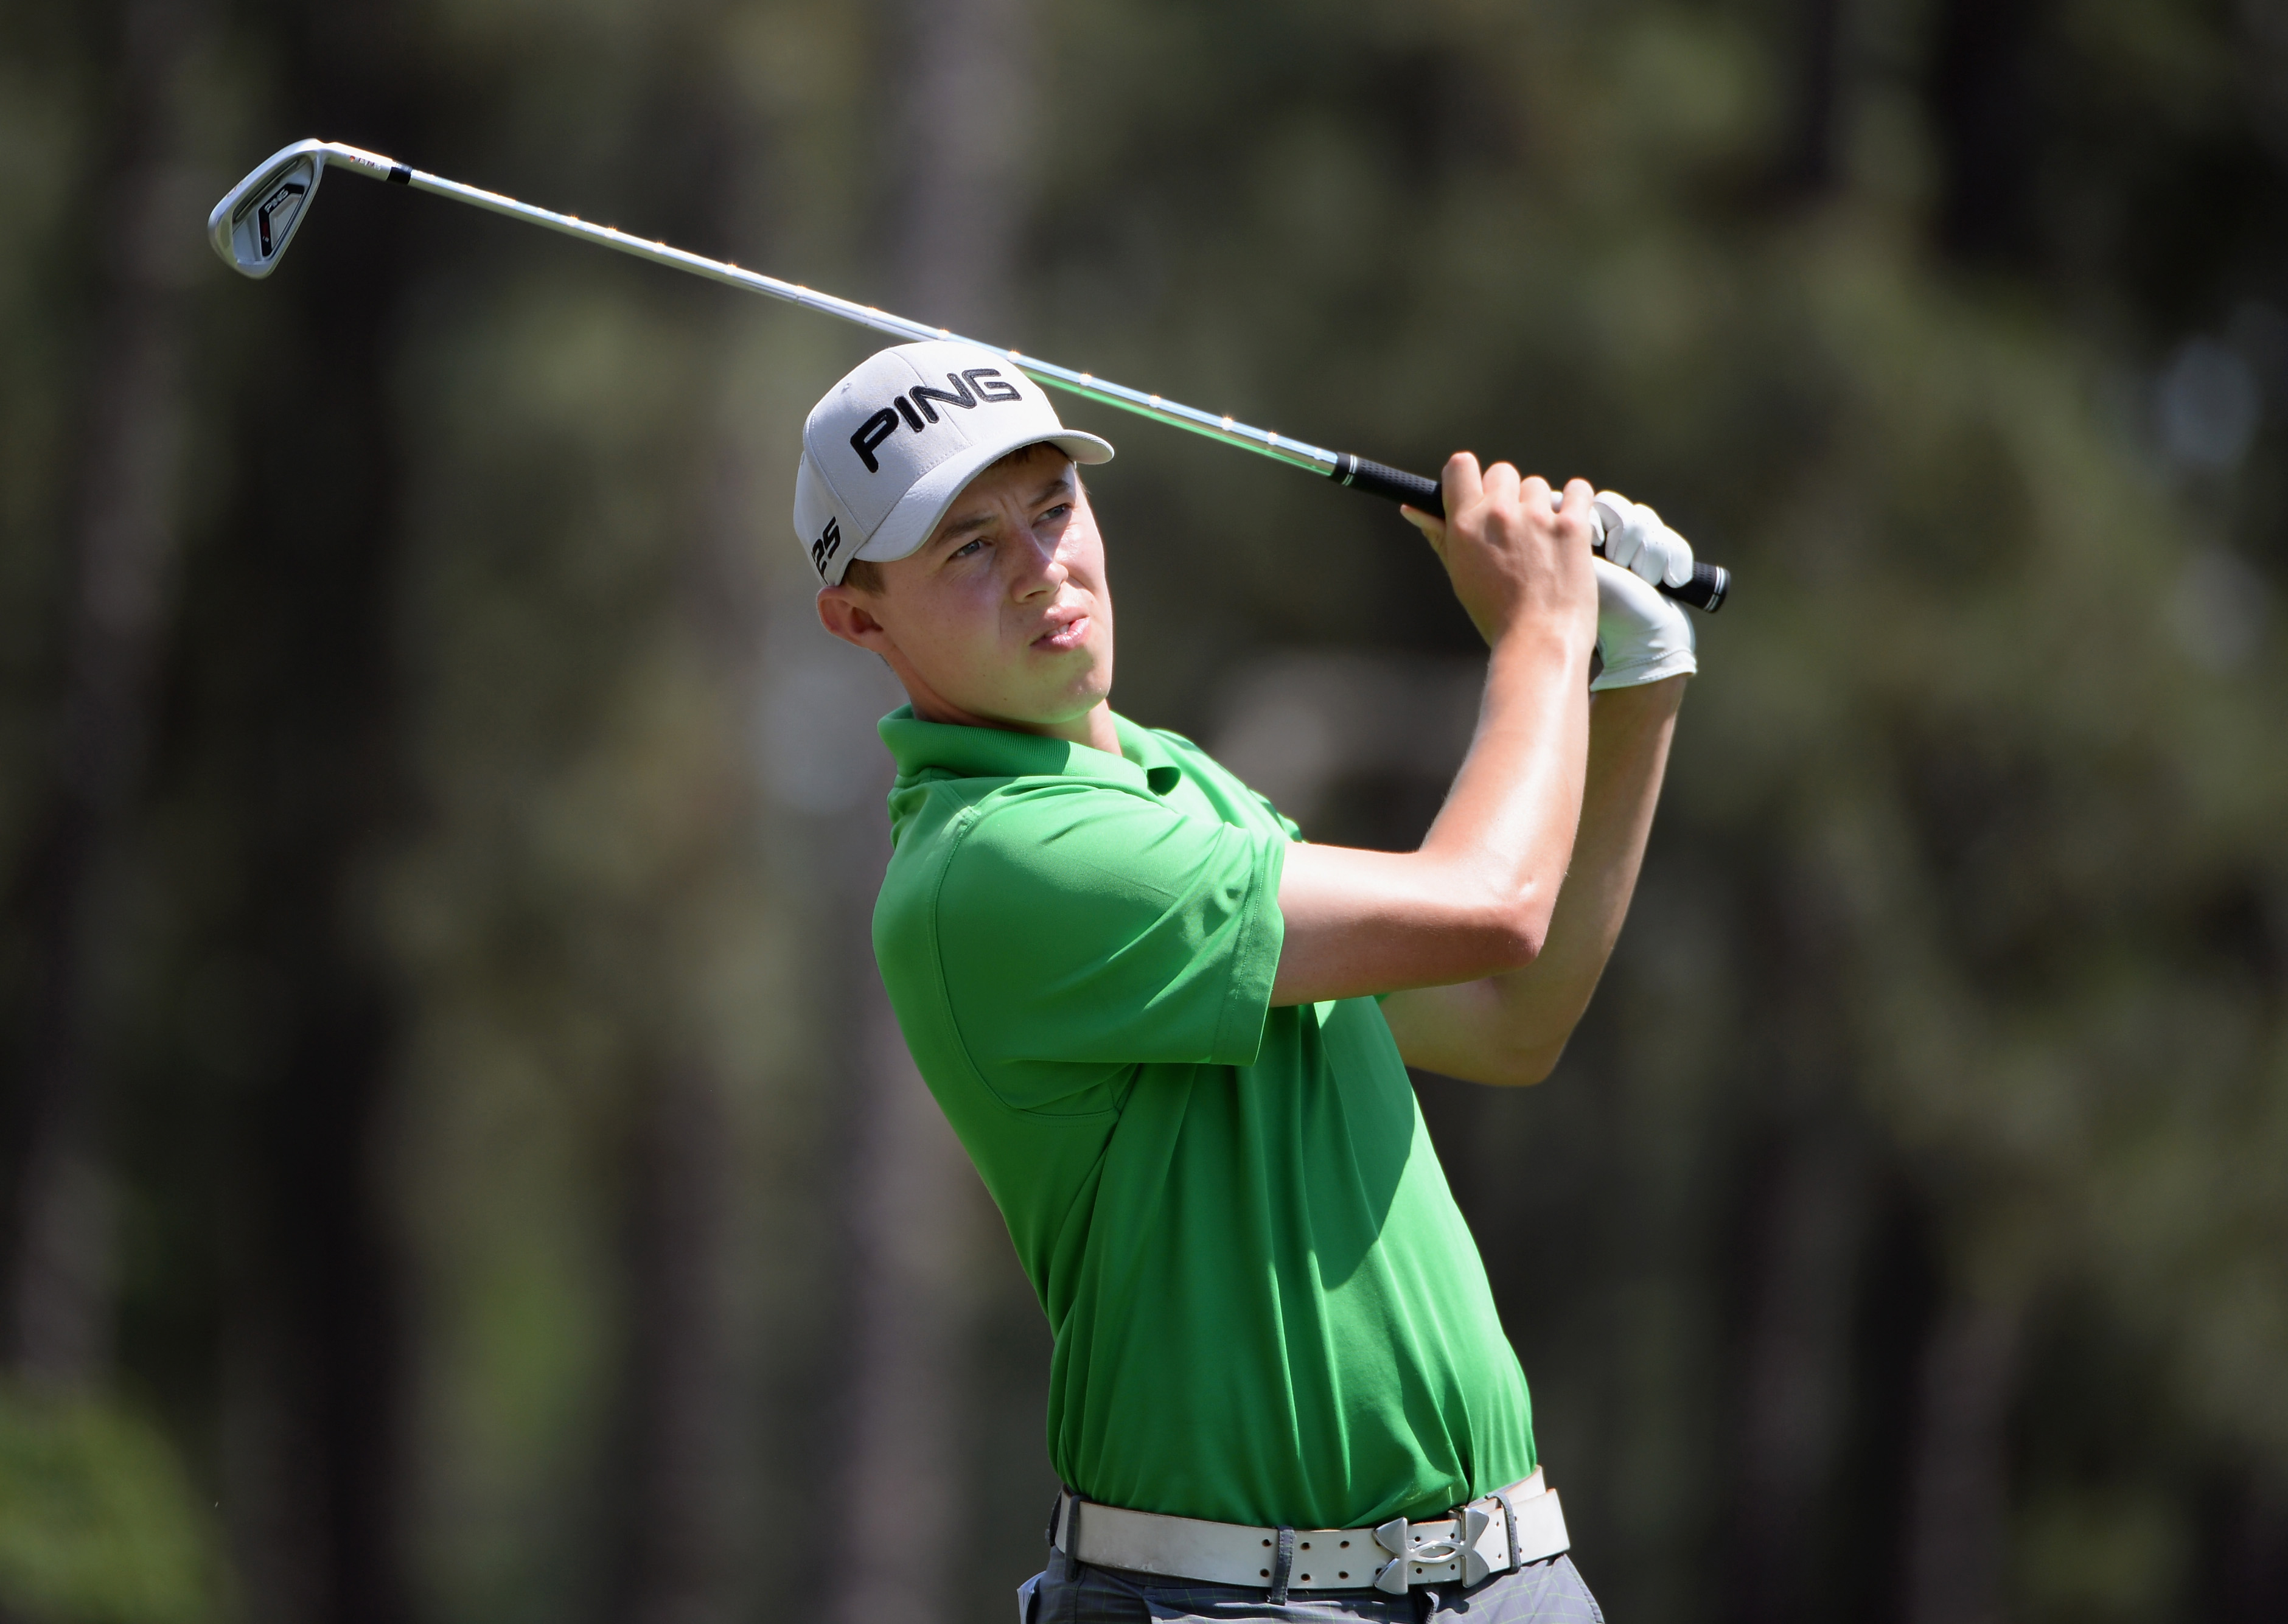 Matthew Fitzpatrick during Wednesday's practice round for the 2014 U.S. Open at Pinehurst No. 2.